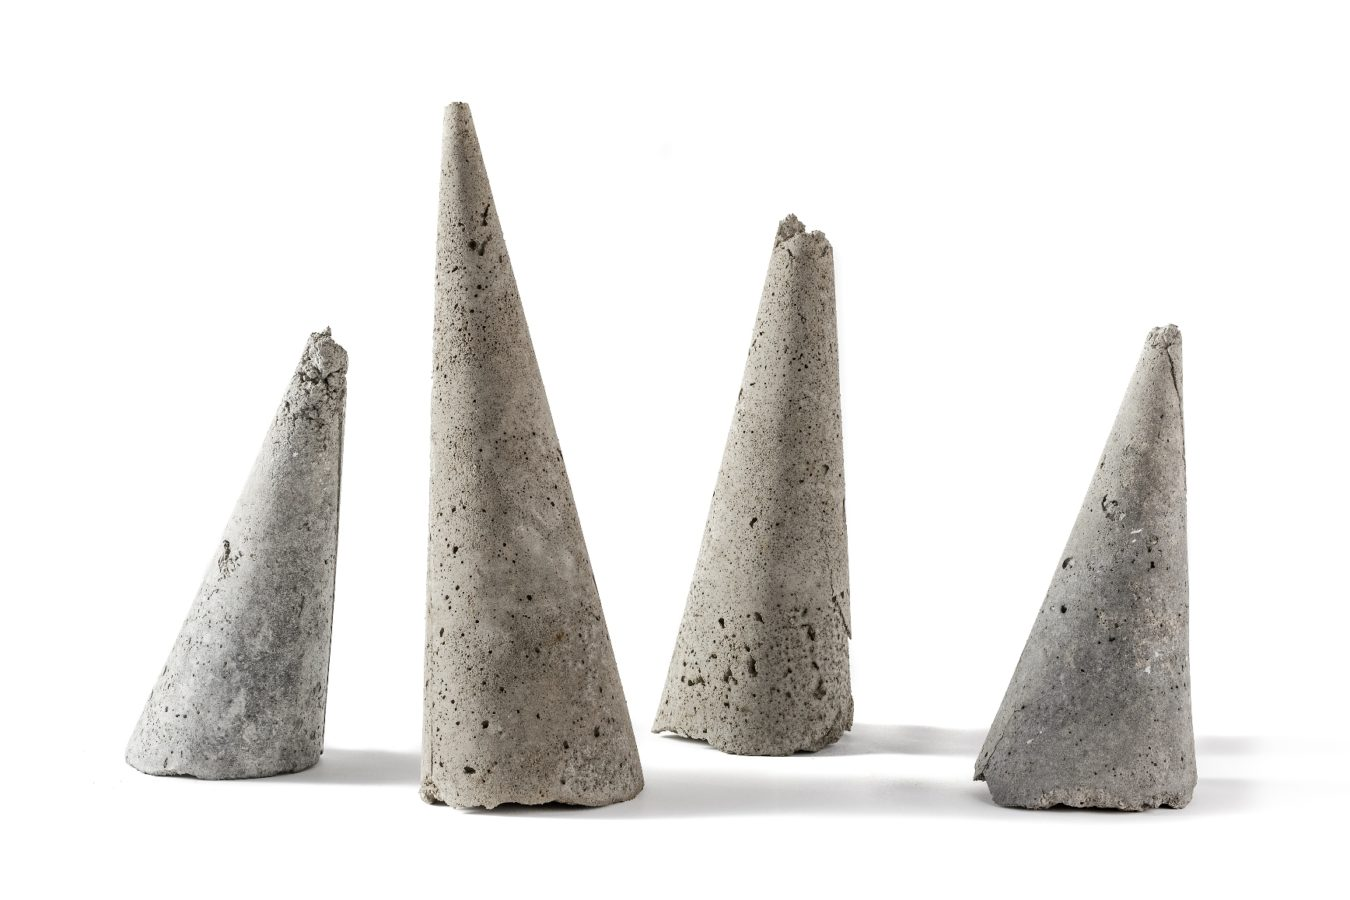 Untitled, ash cones, h 30 cm. three elements, 2008 - in progress (photo by Pier Luigi Dessì)